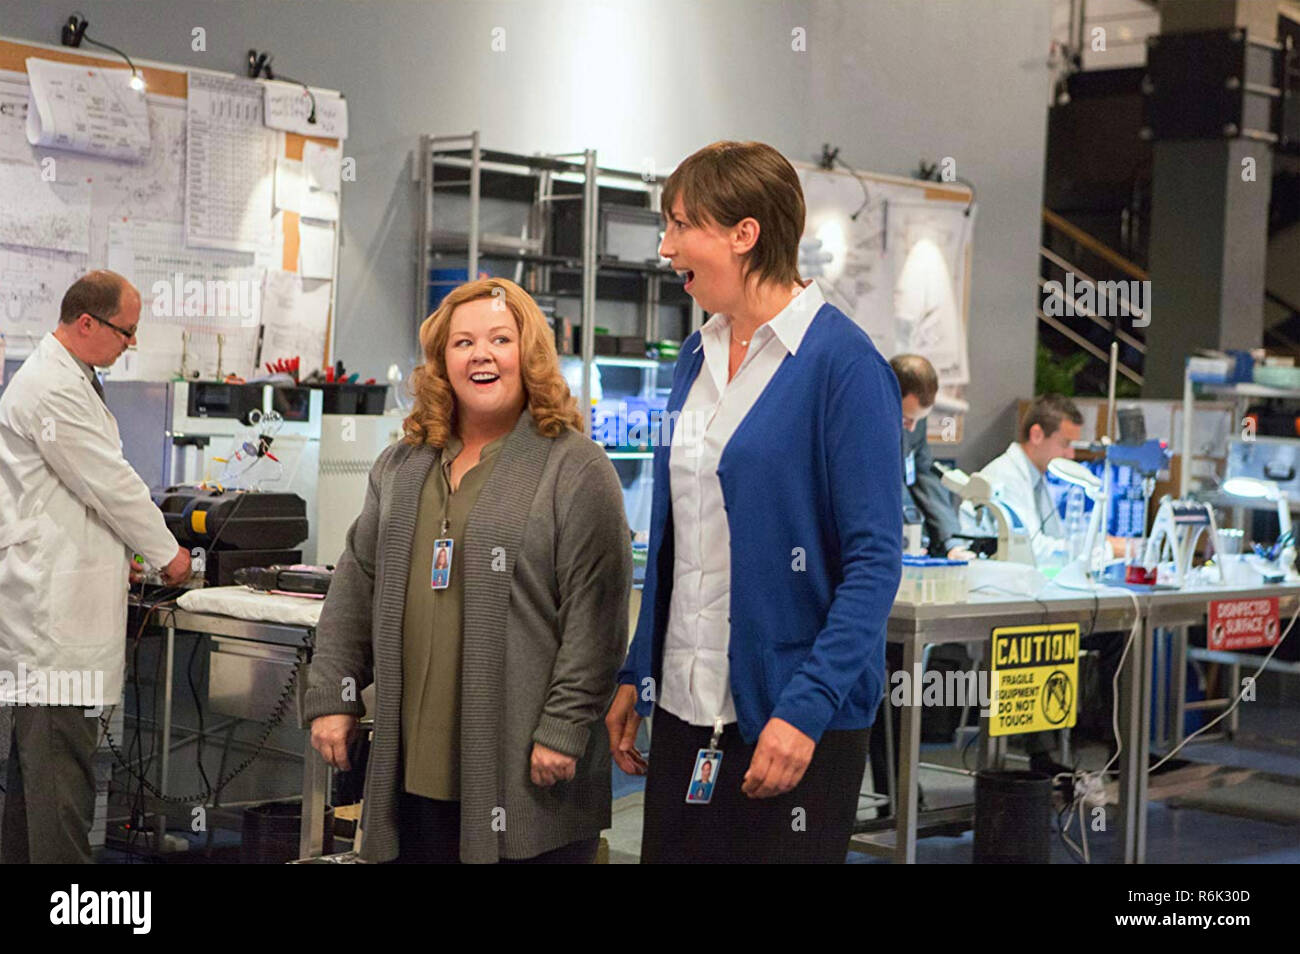 SPY 2015 20th Century Fox film with Melissa McCarthy at left and Miranda Hart in a CIA laboratory - Stock Image